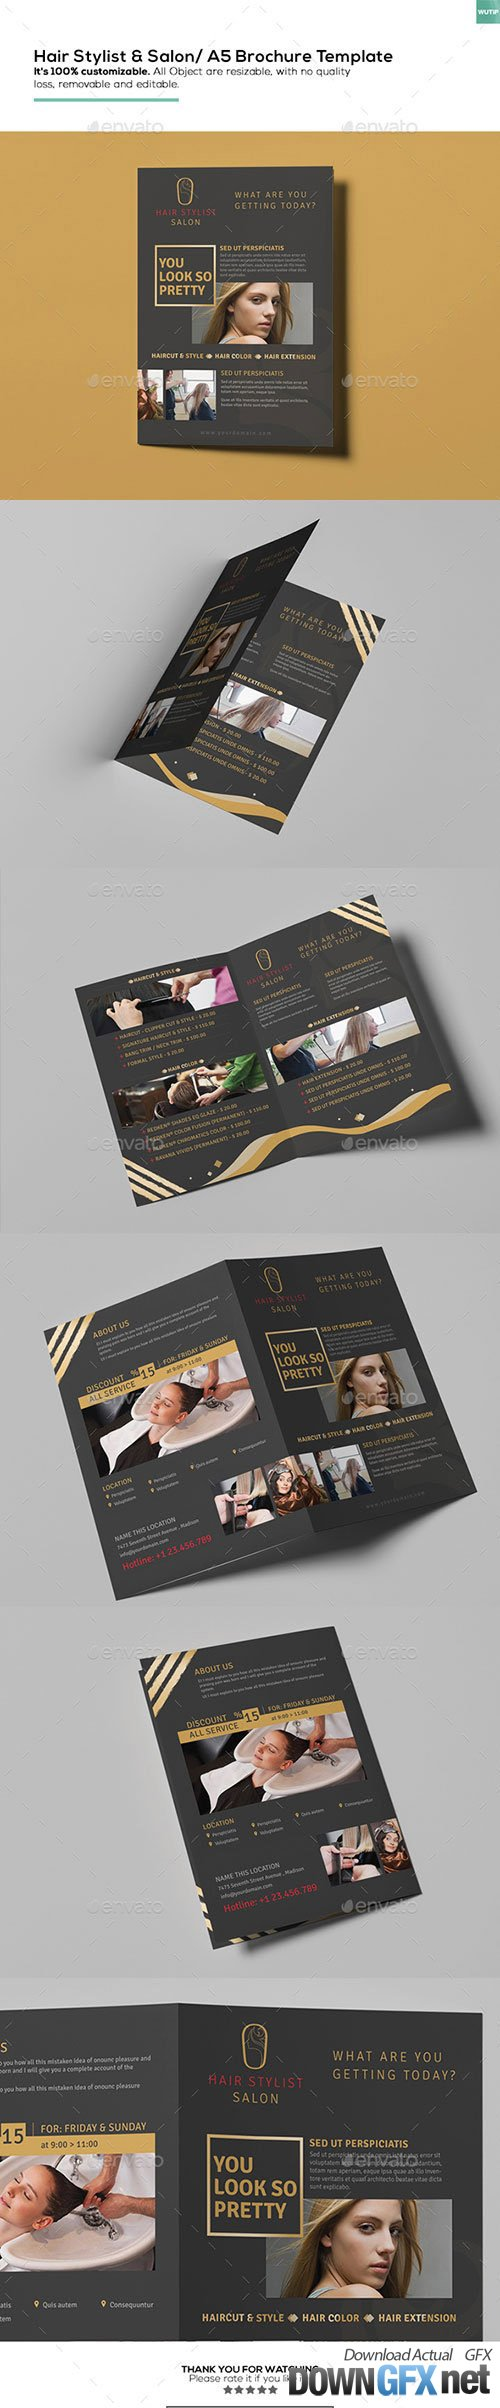 Hair Stylist & Salon/ A5 Brochure Template 16162465